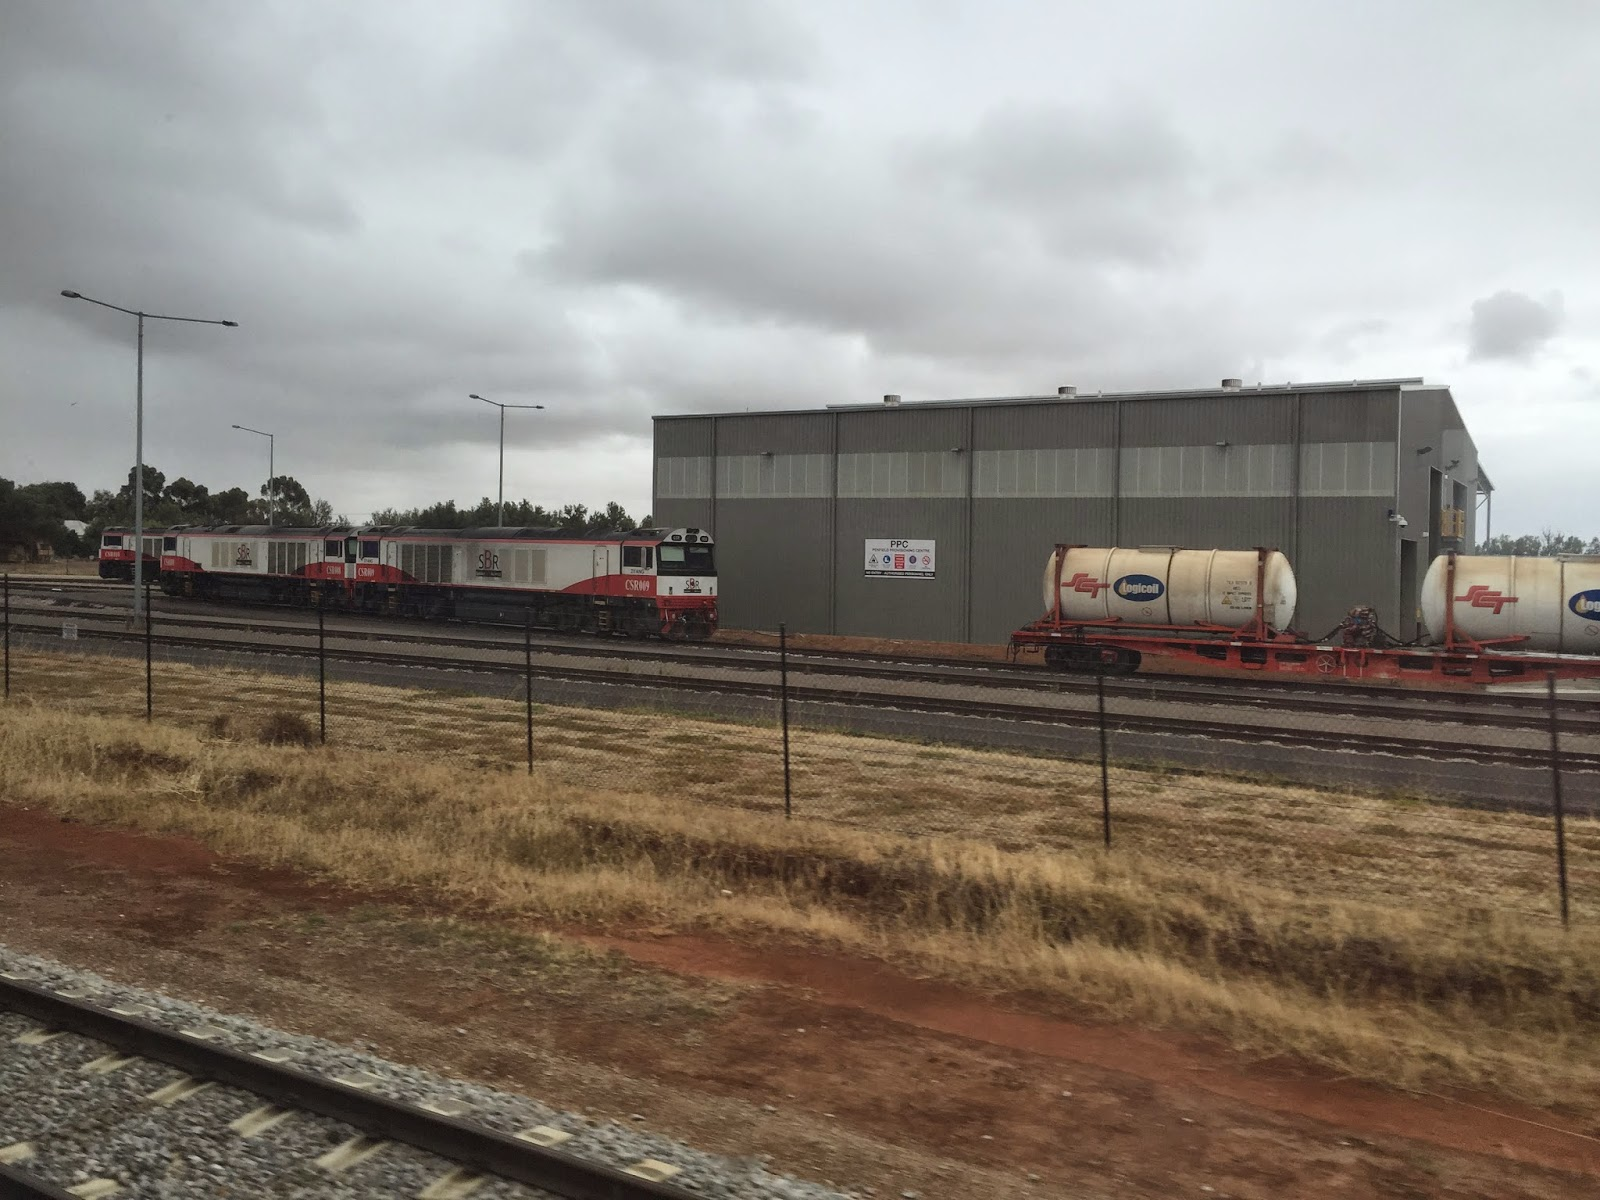 Epsilon's Interesting Trains Blog: Indian Pacific Train from